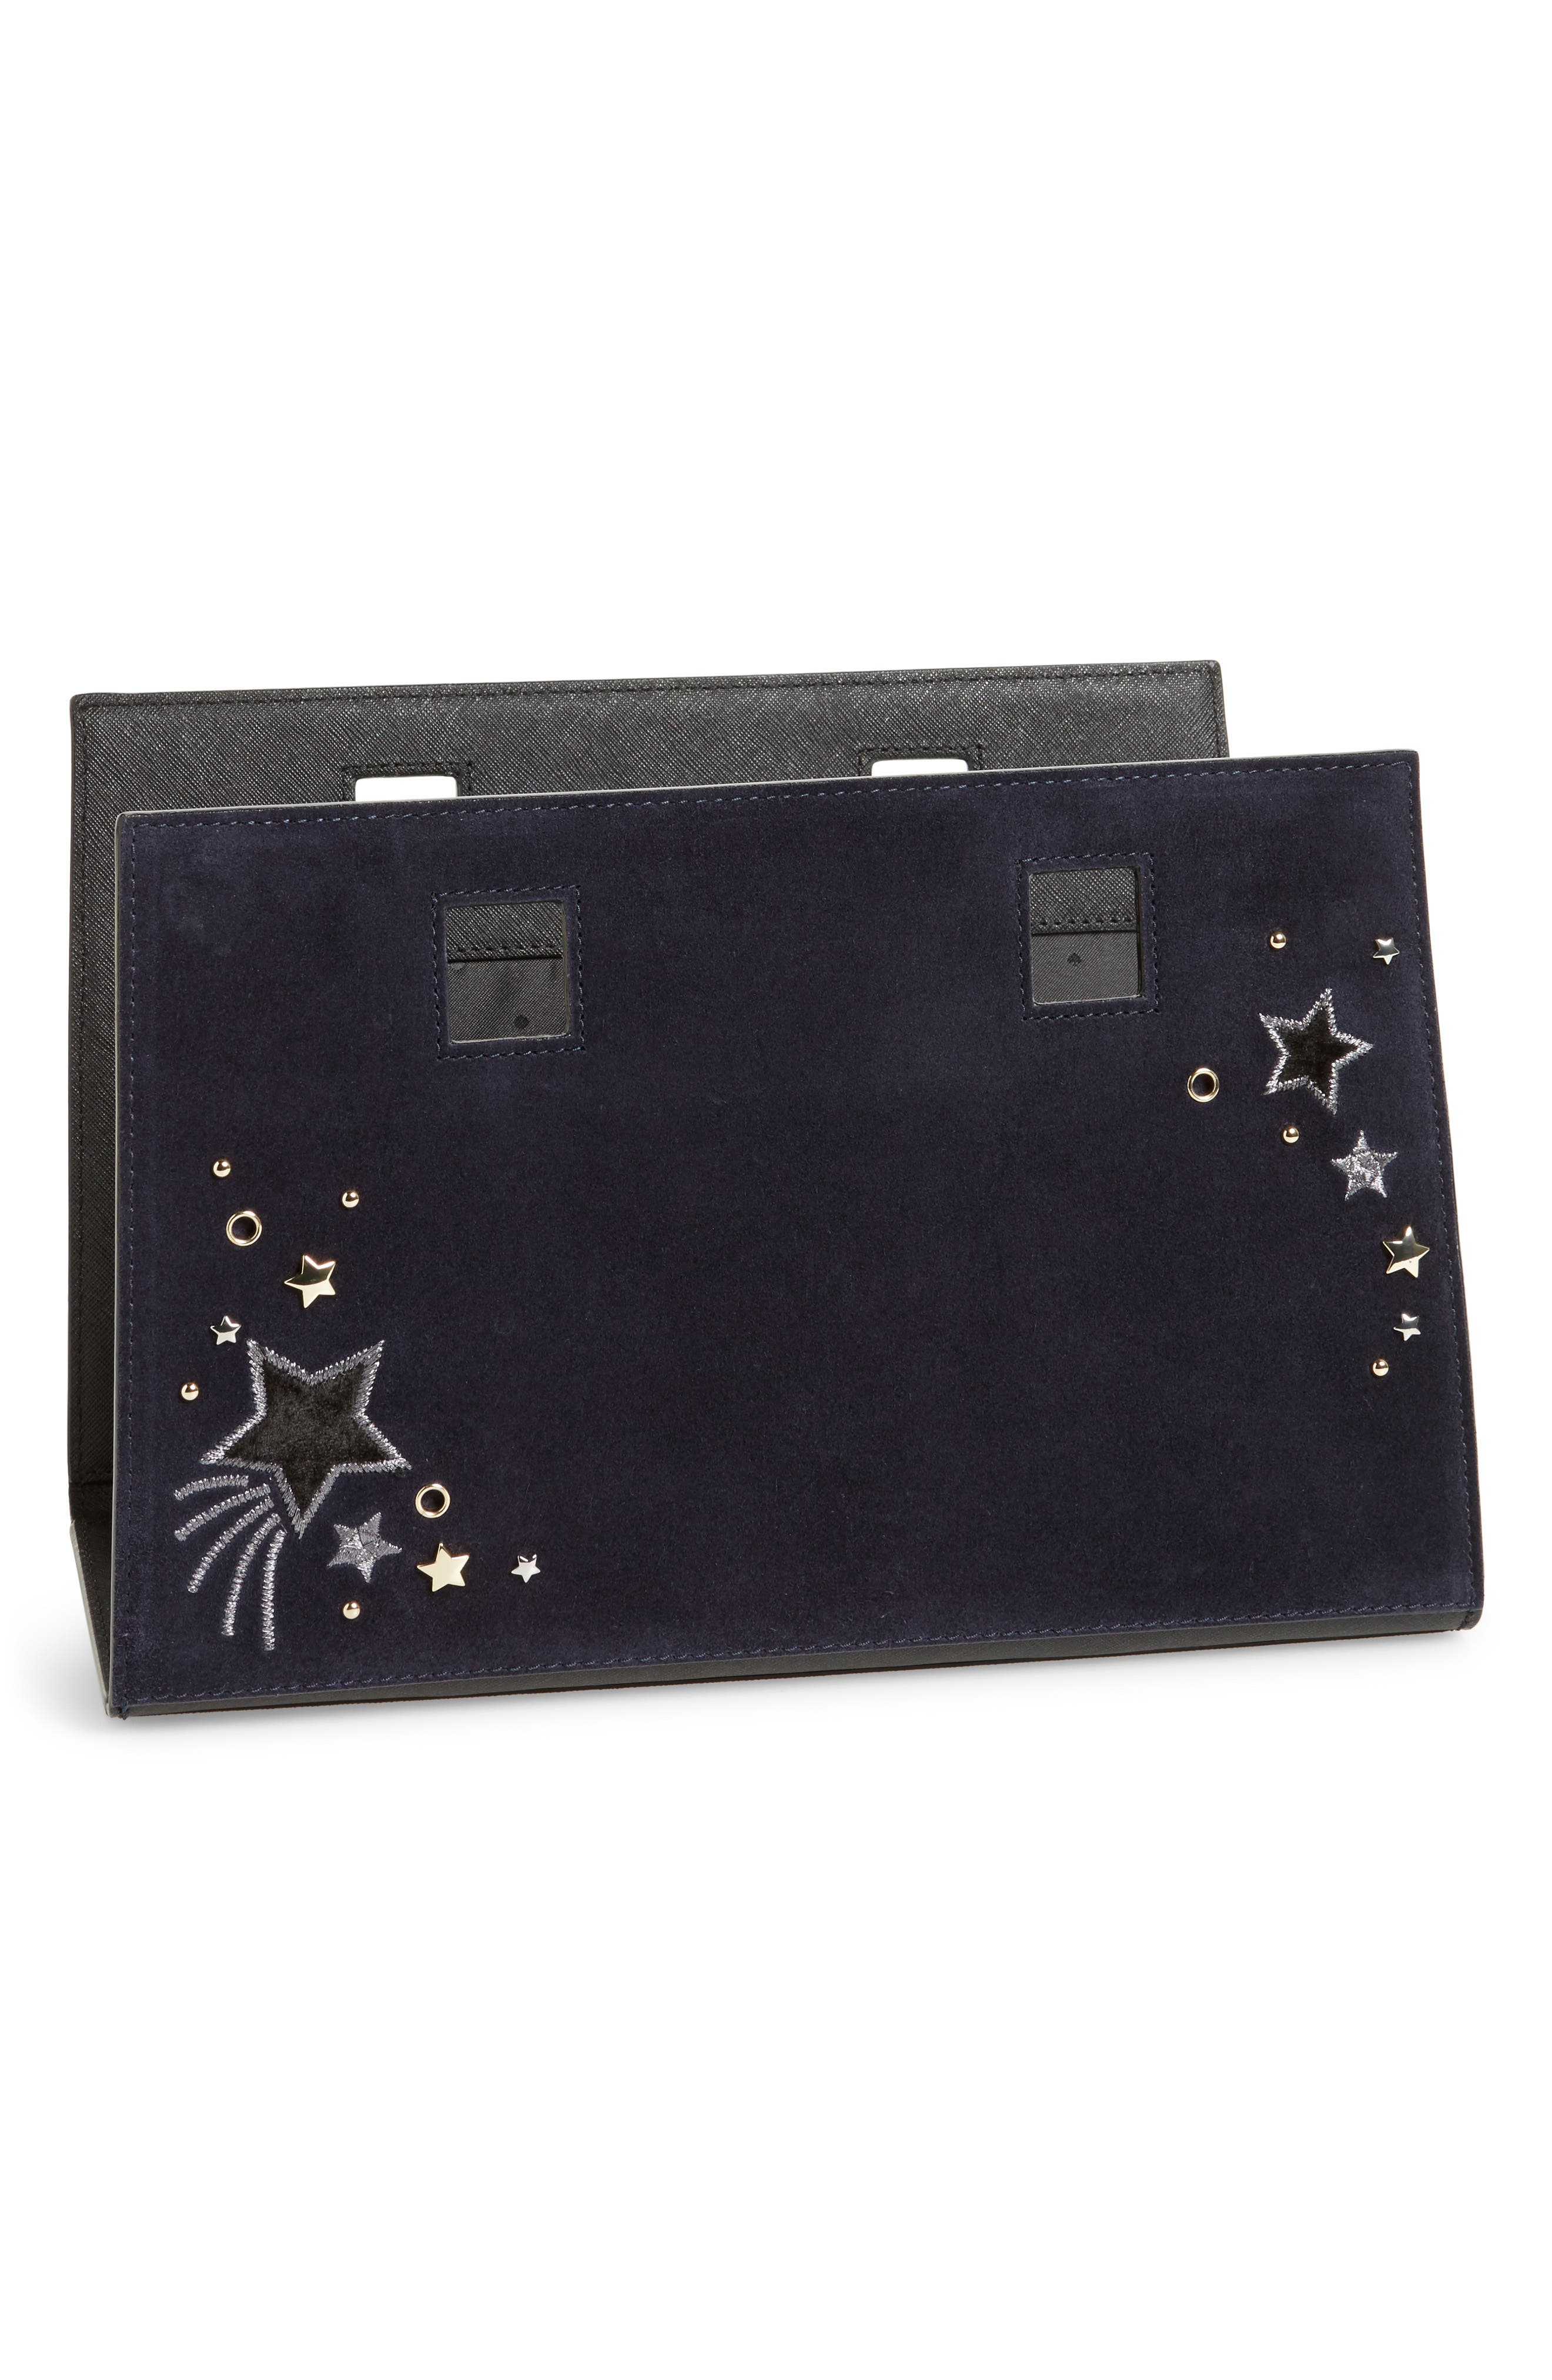 kate spade new york make it mine star embellished leather snap-on accent flap